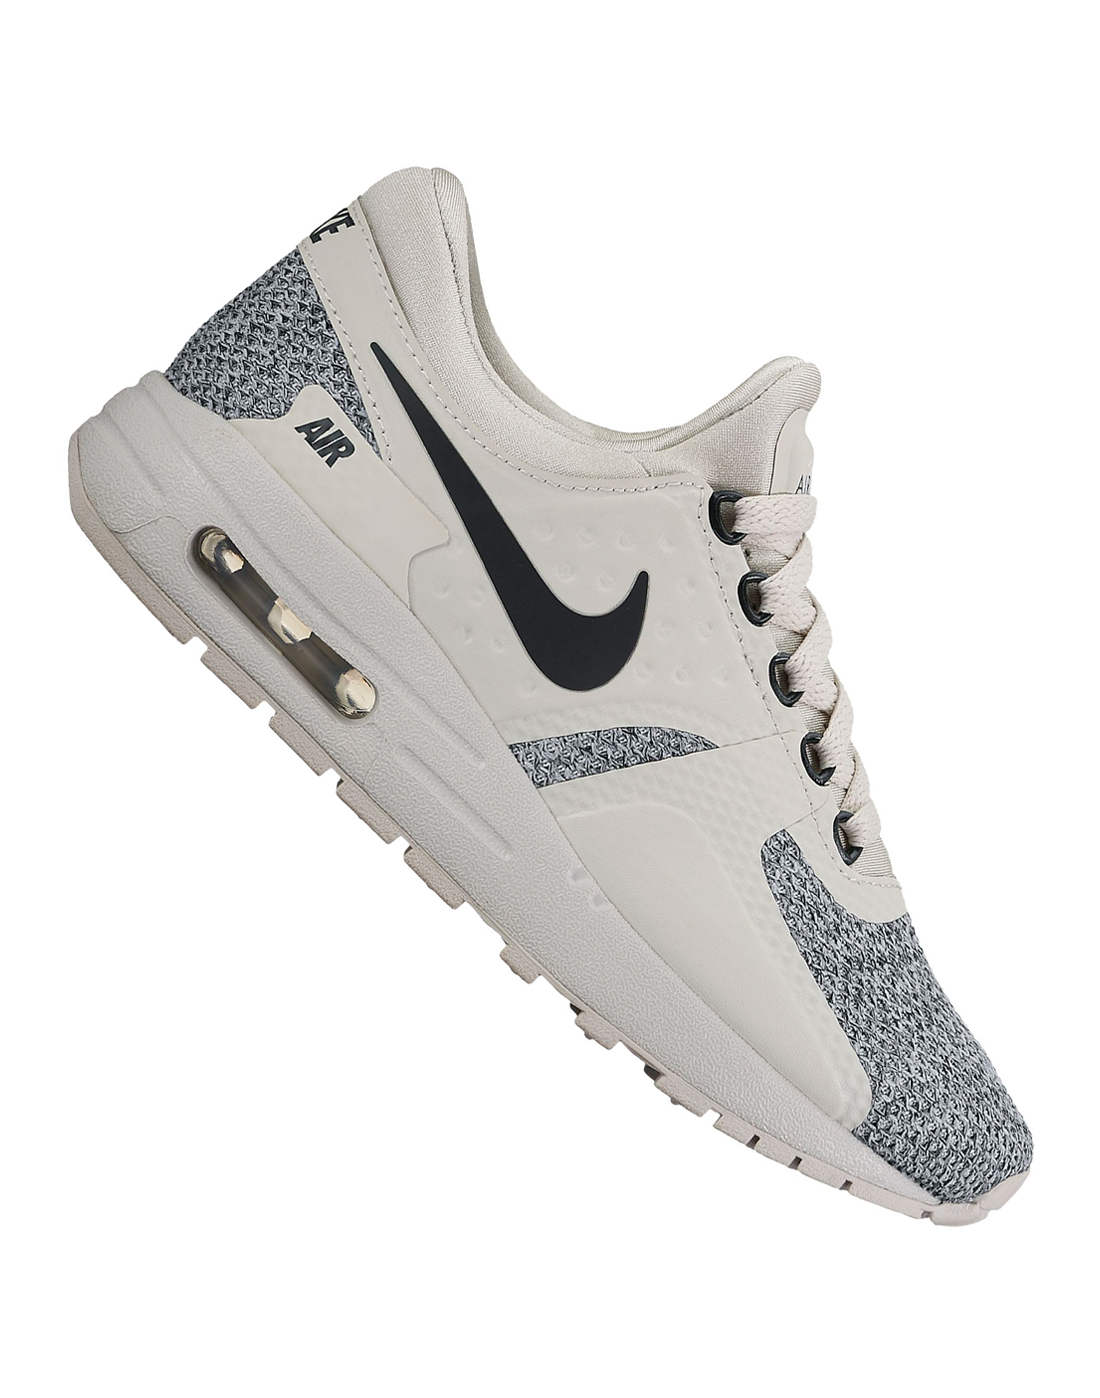 save off be8bb 8cdc2 Older Boys Air Max Zero